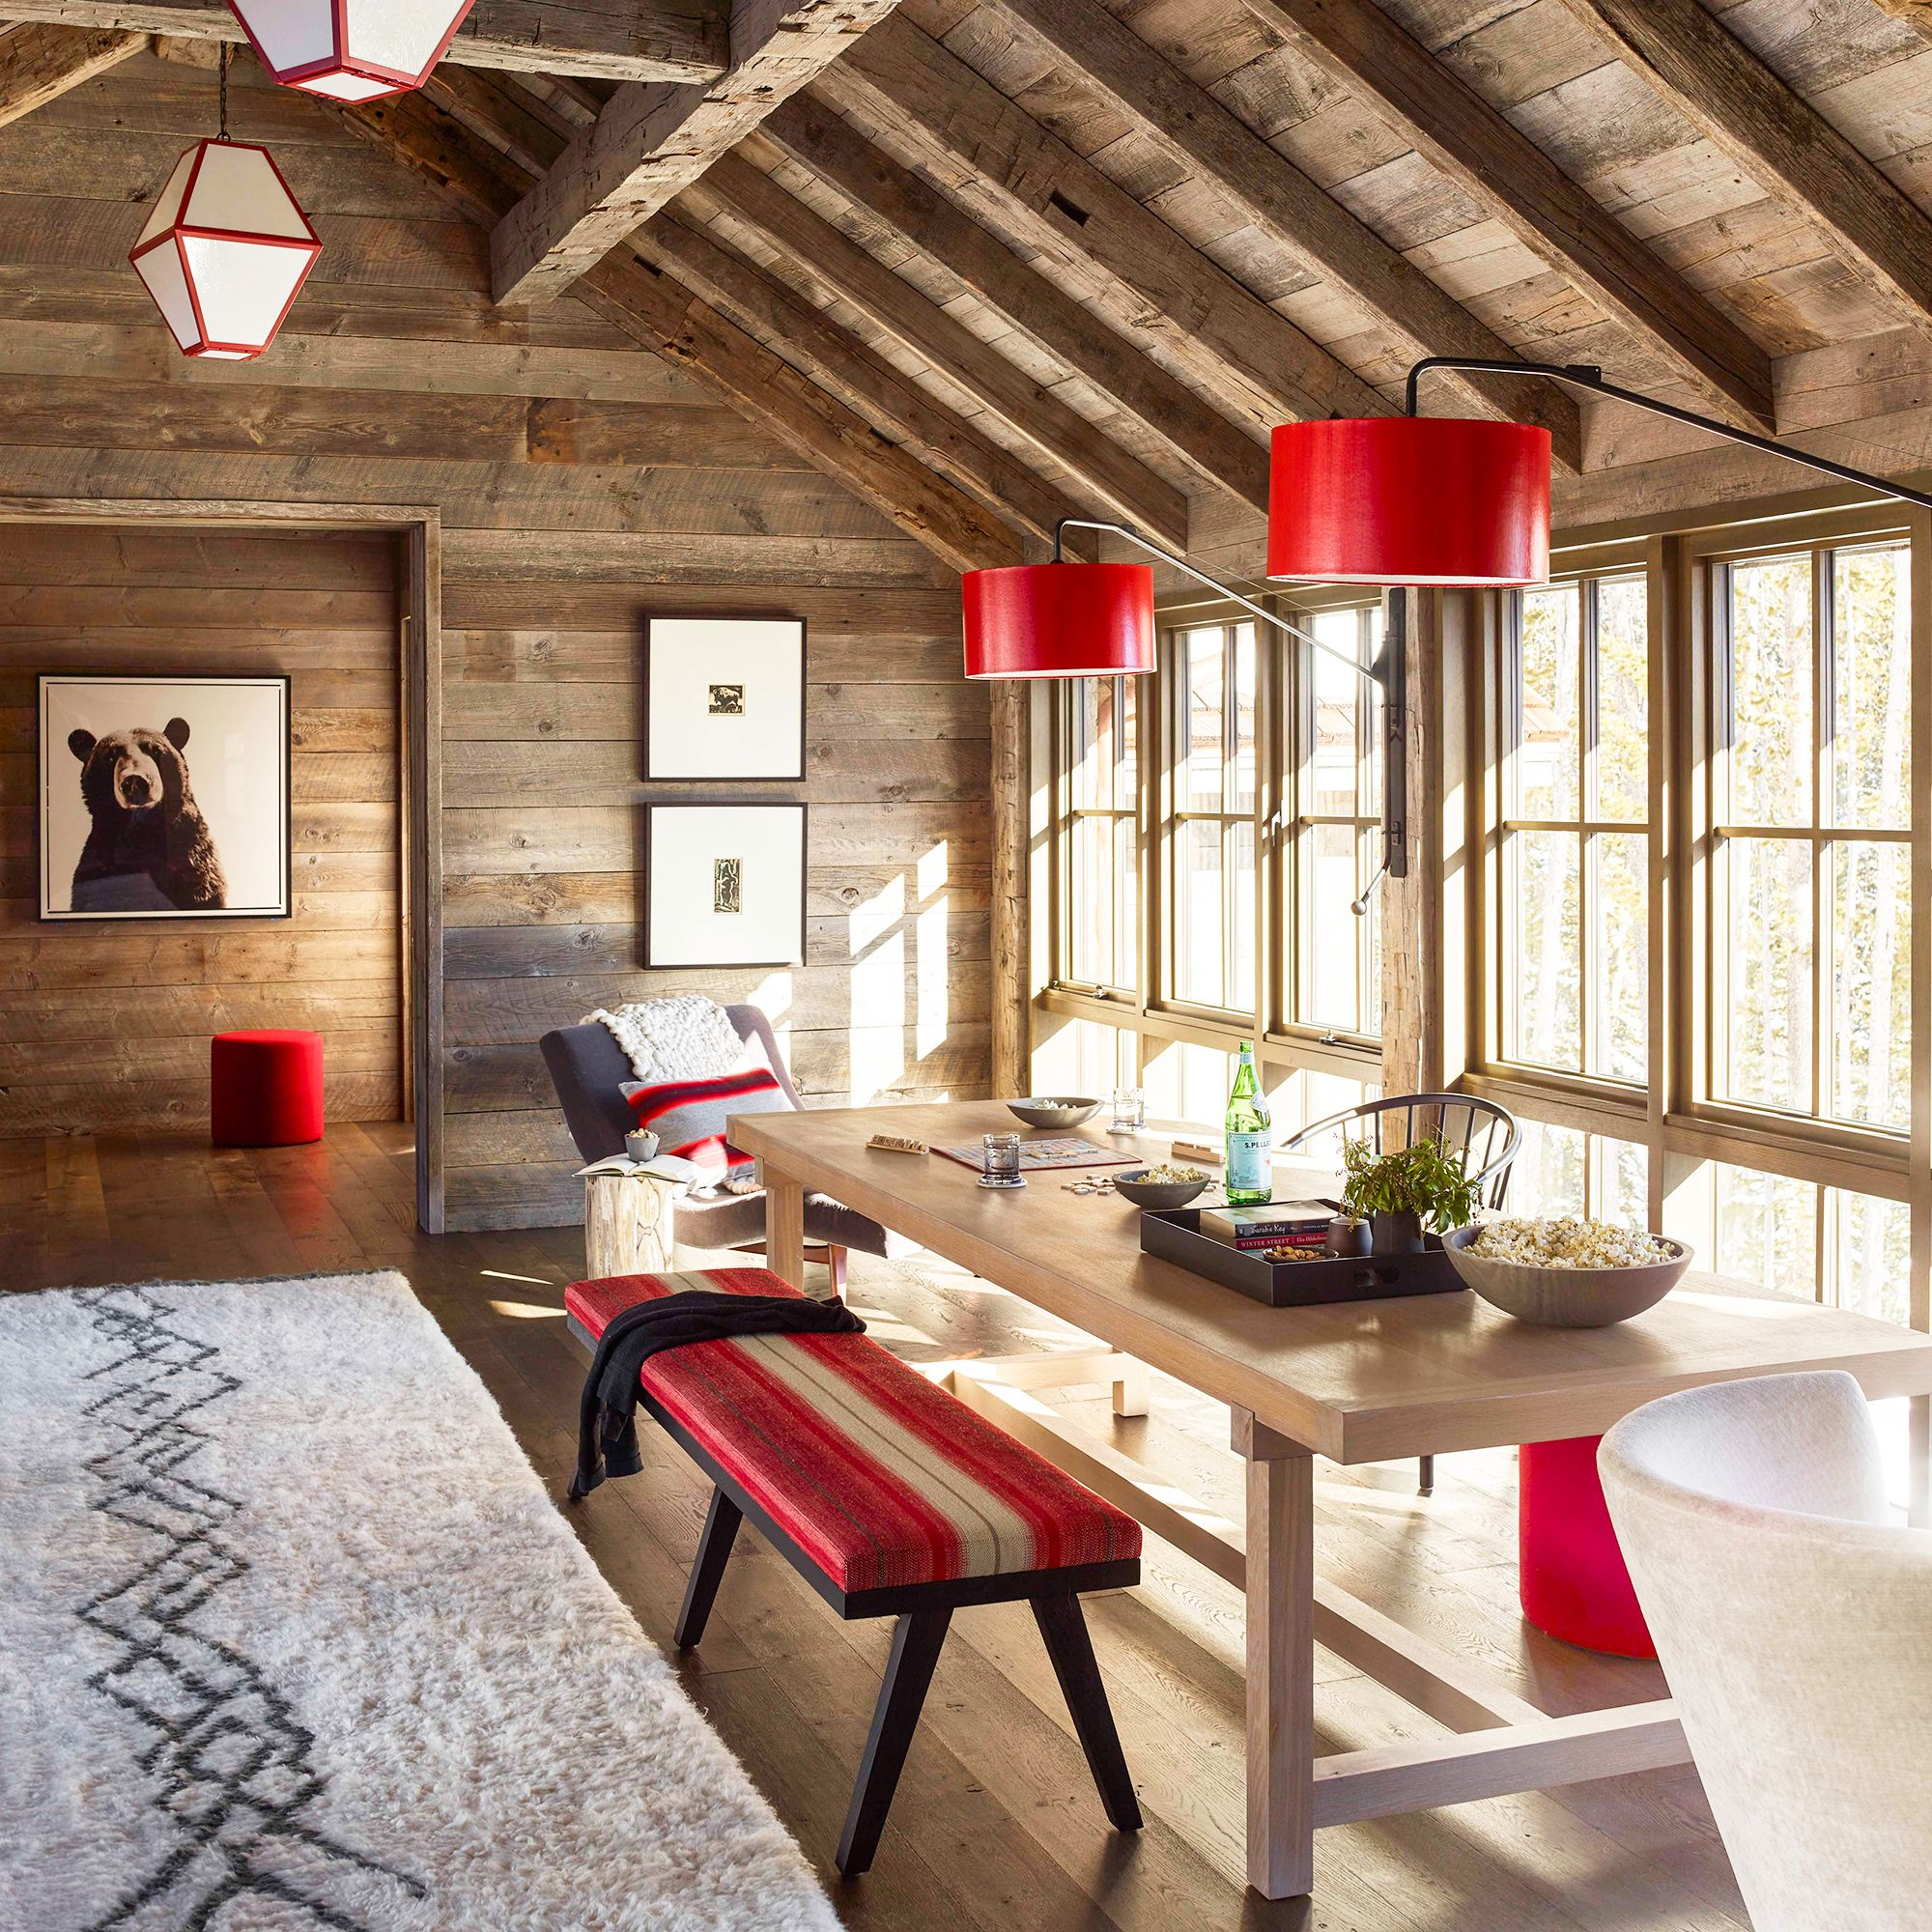 24 Best Rustic Decor Design Ideas In 2021 Rustic Home Decor Inspiration